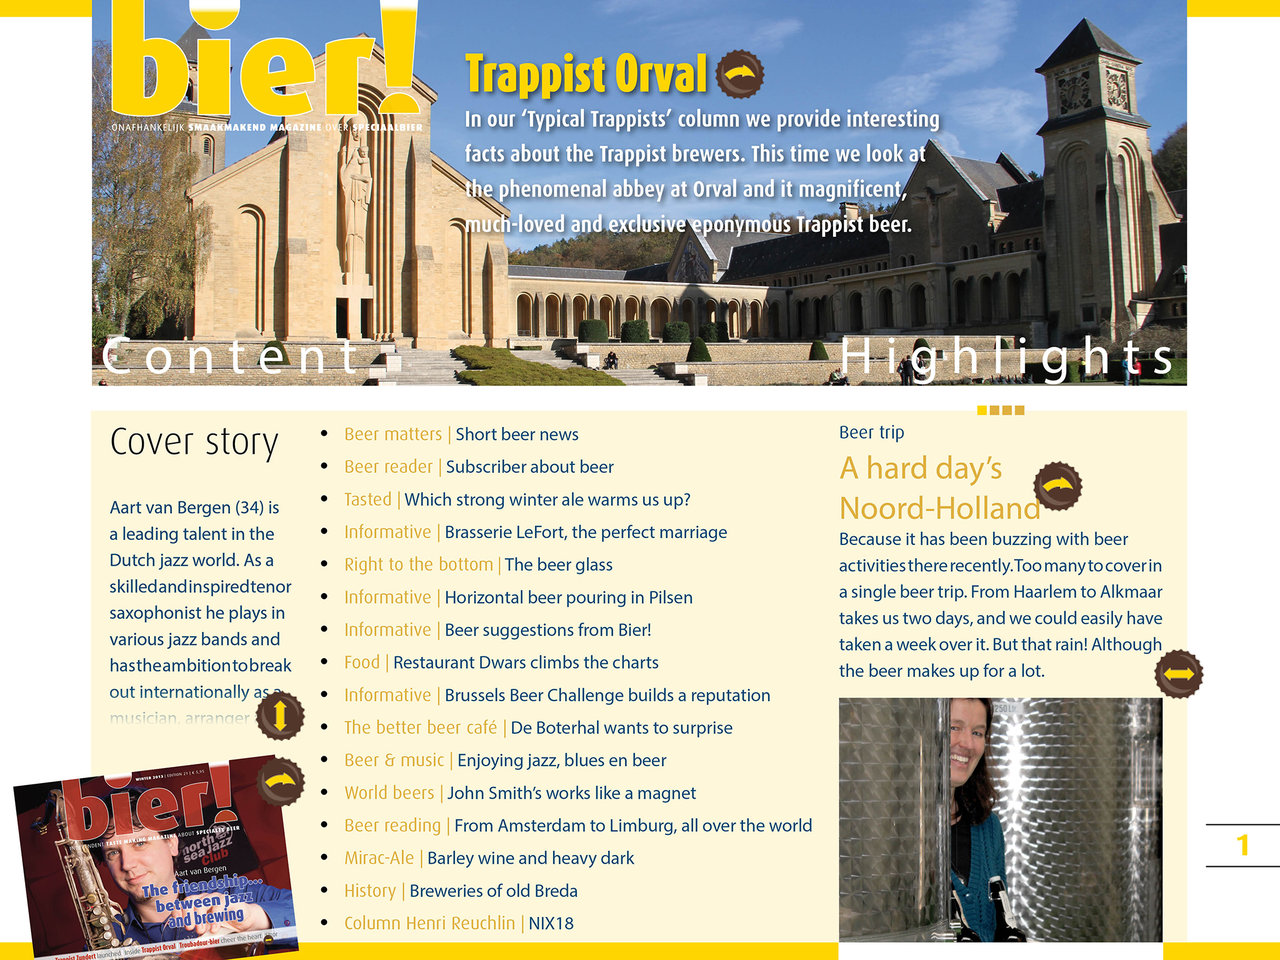 The table of content page of issue 21, Bier! Magazine